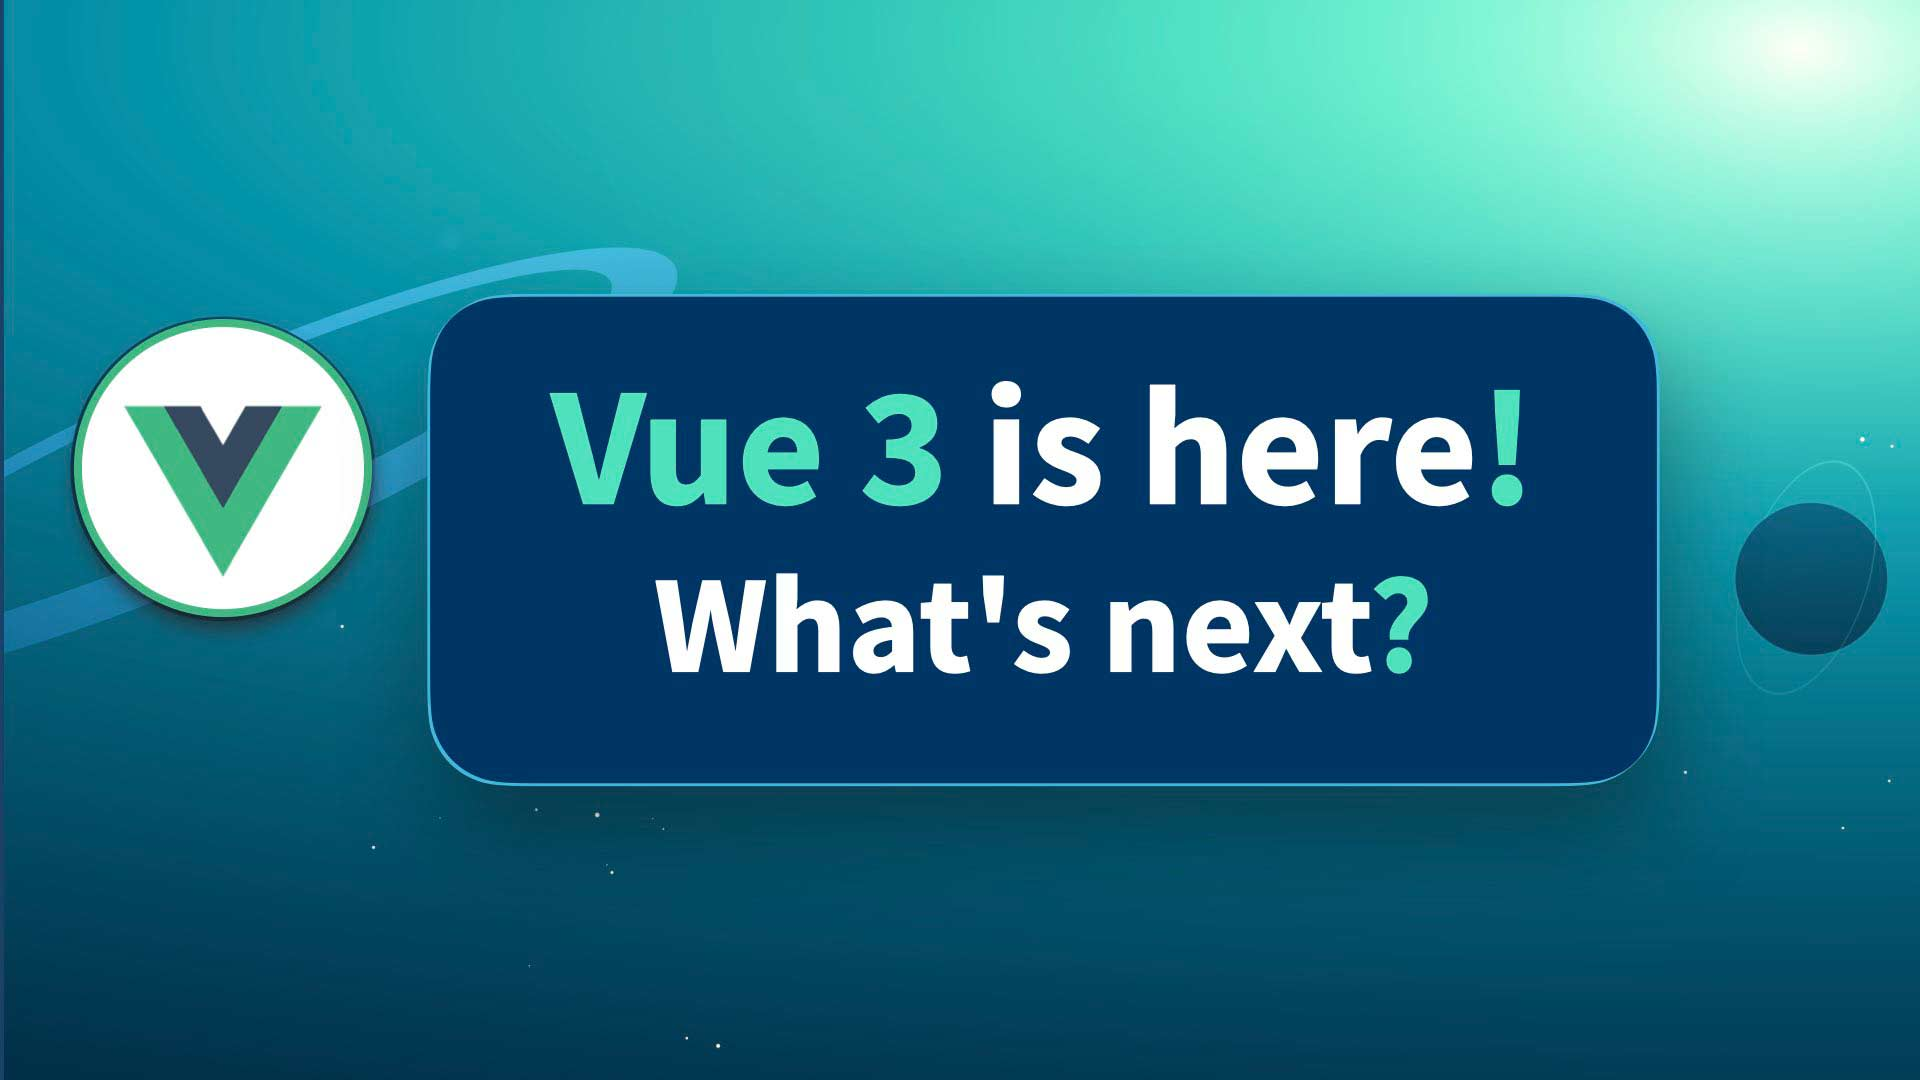 Vue 3.0 is here! What's next?